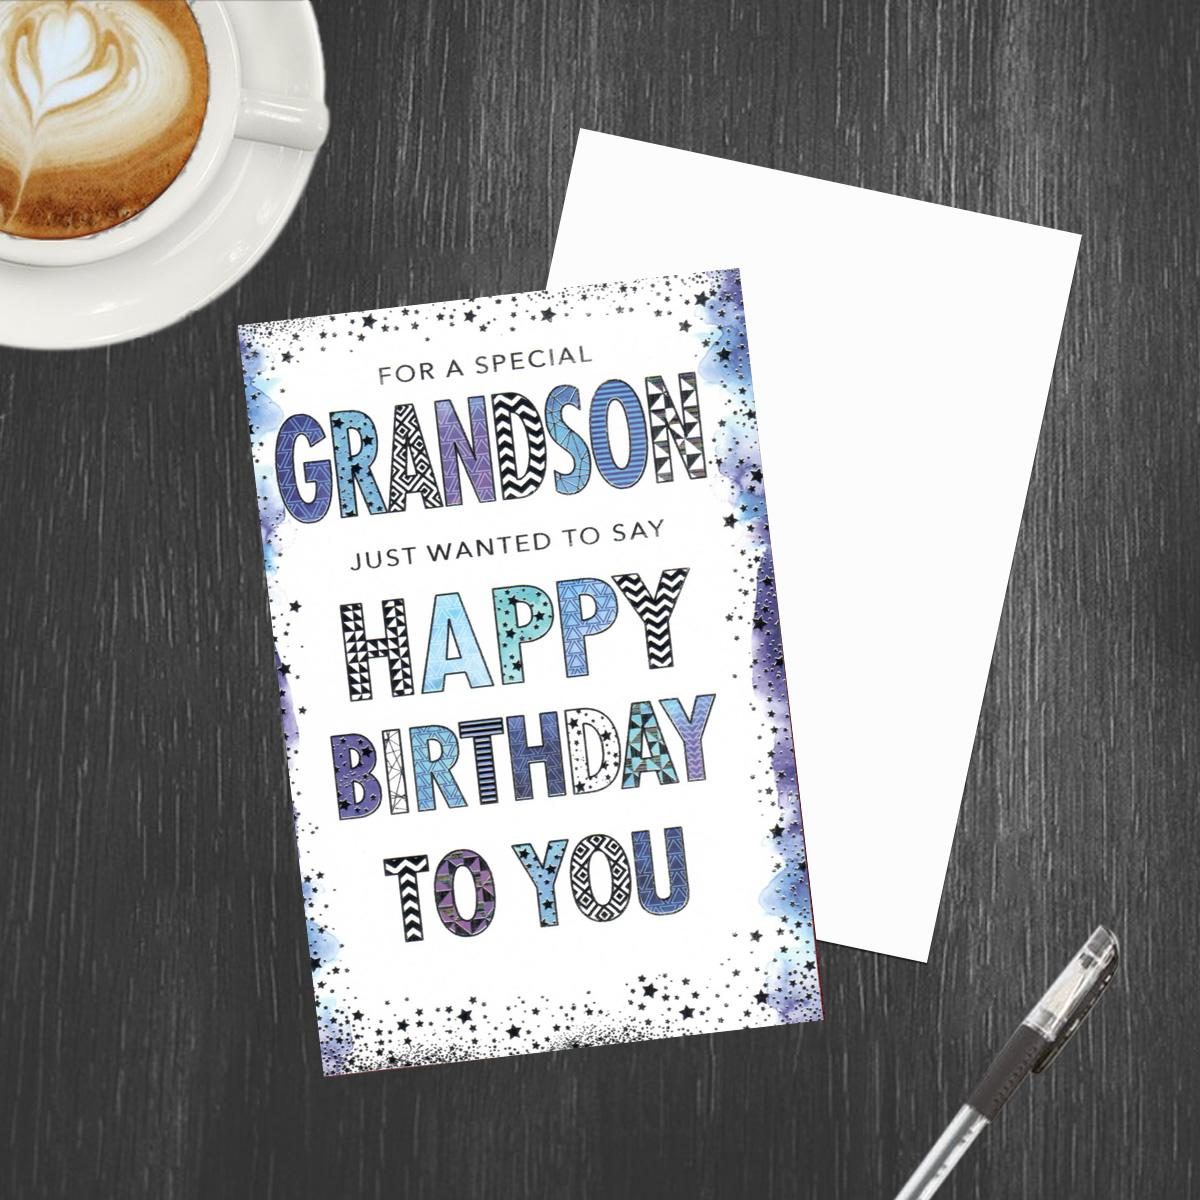 Grandson Pizazz Birthday Card Alongside Its Envelope